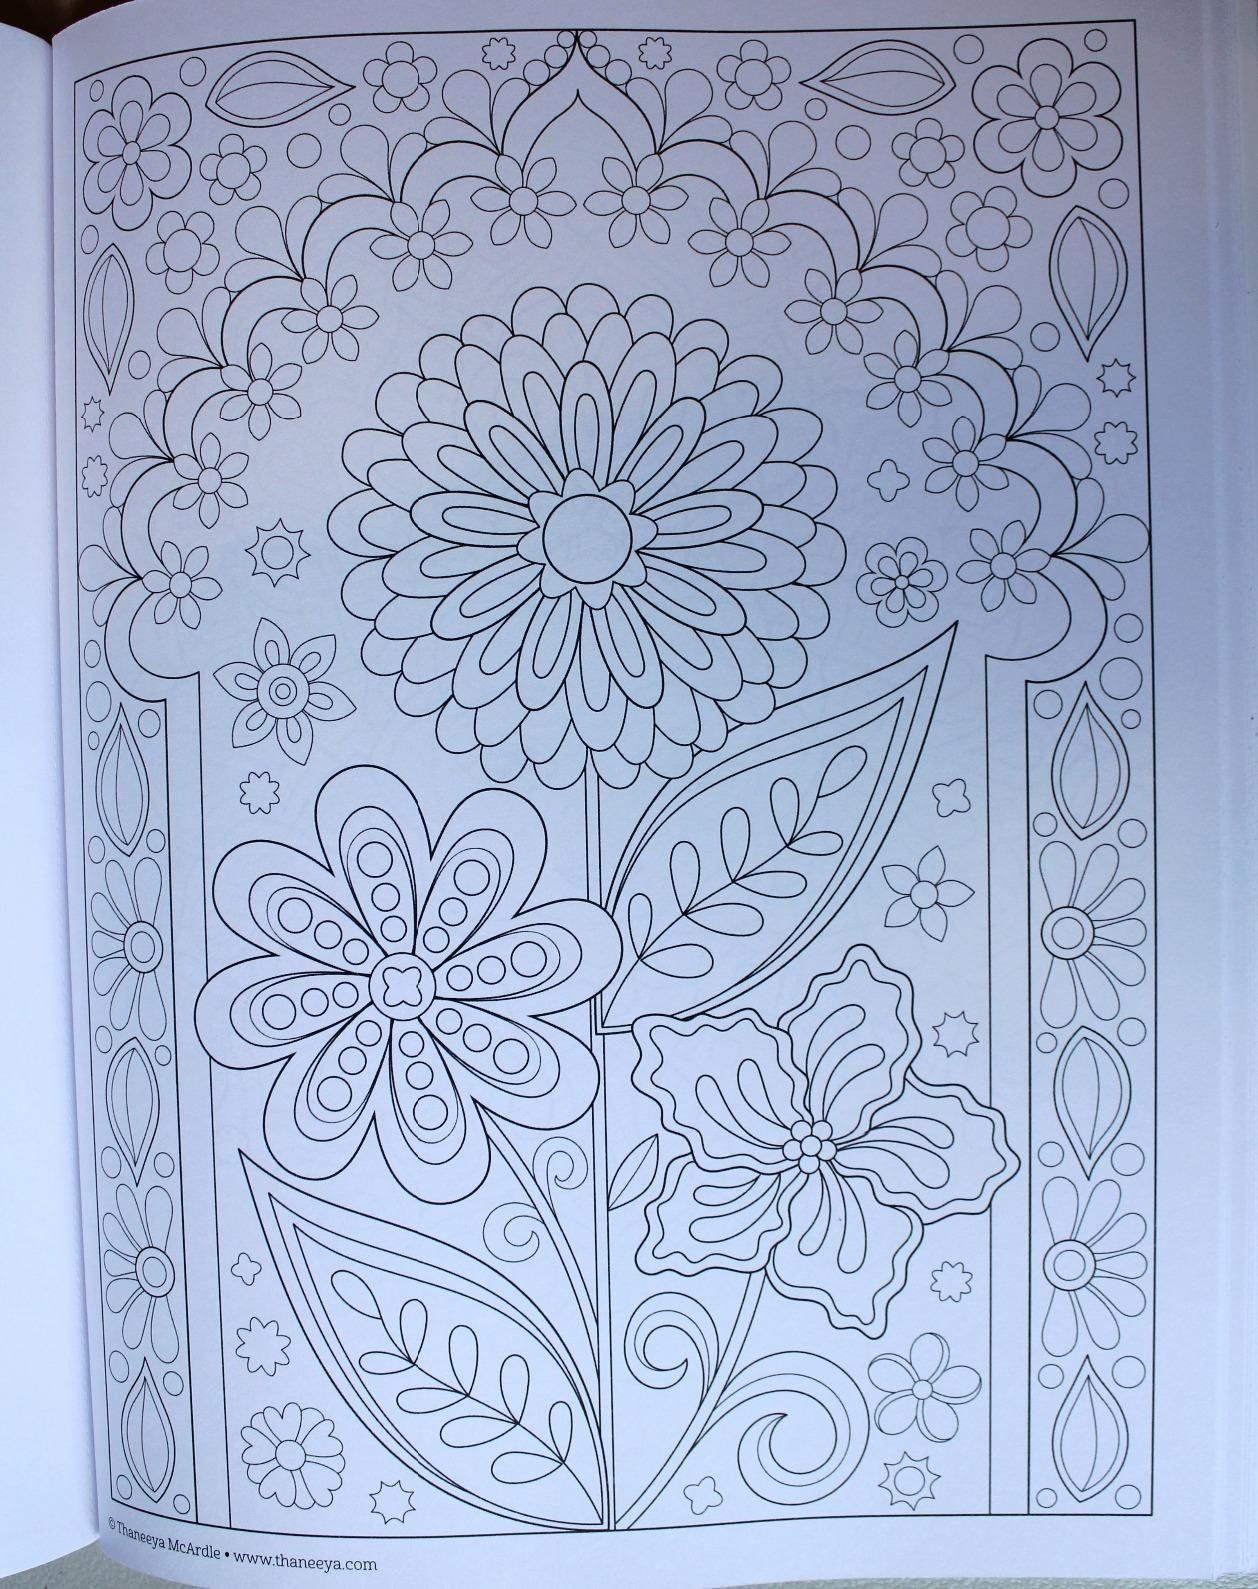 Free spirit coloring book by thaneeya mcardle coloring books by - Follow Your Bliss Coloring Book Coloring Activity Book Thaneeya Mcardle 9781574219968